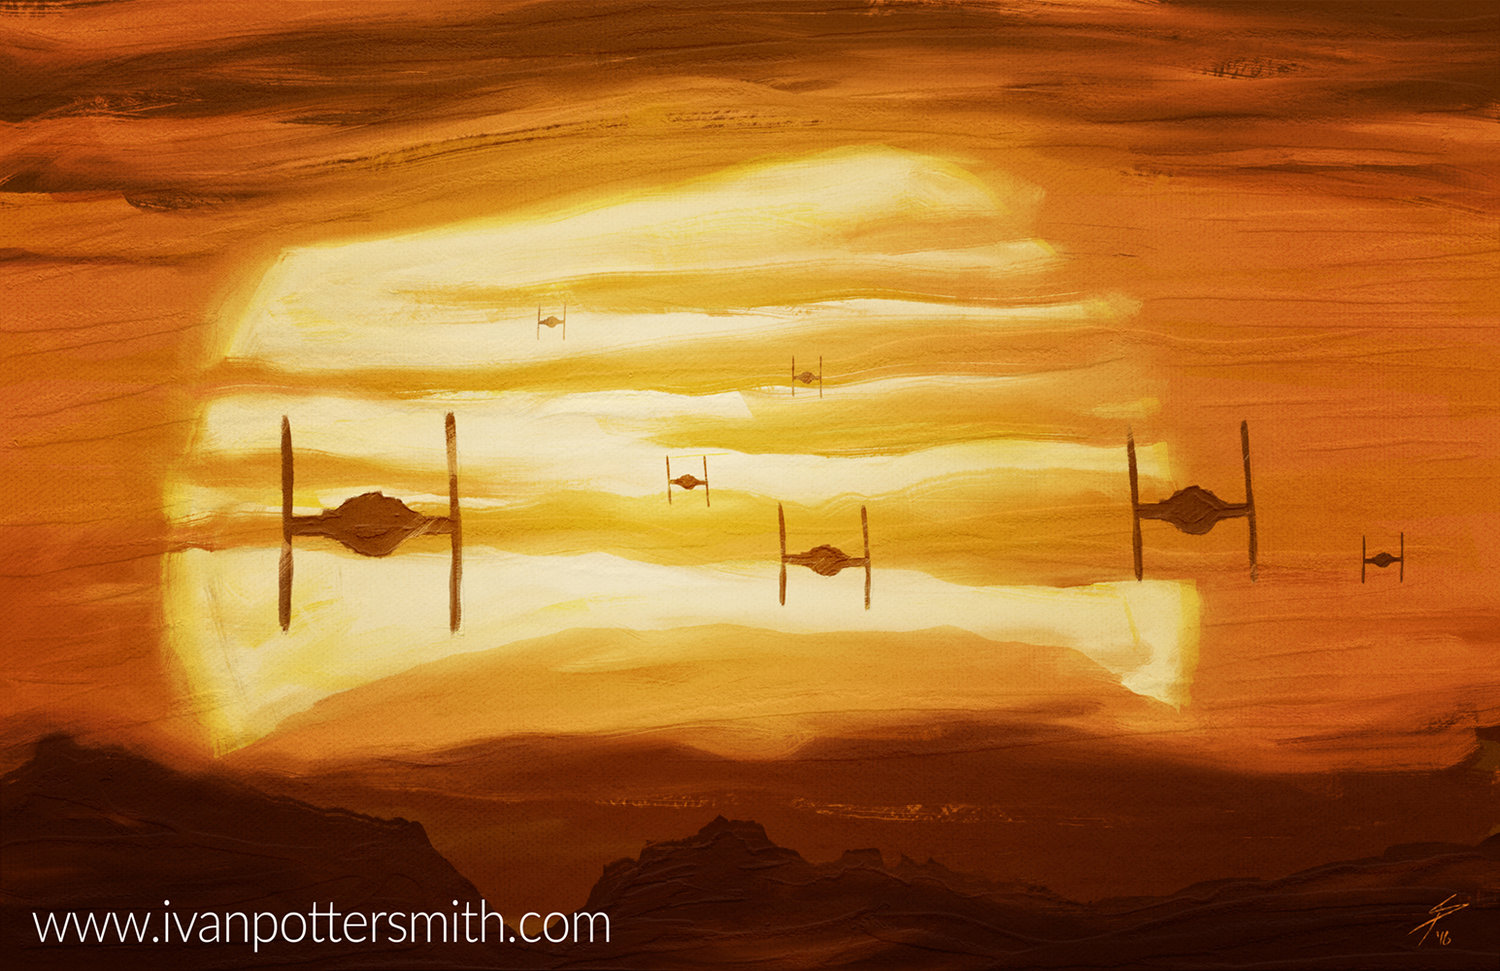 Painting Daily: Tie Fighters in the Sunset — Ivan Potter-Smith